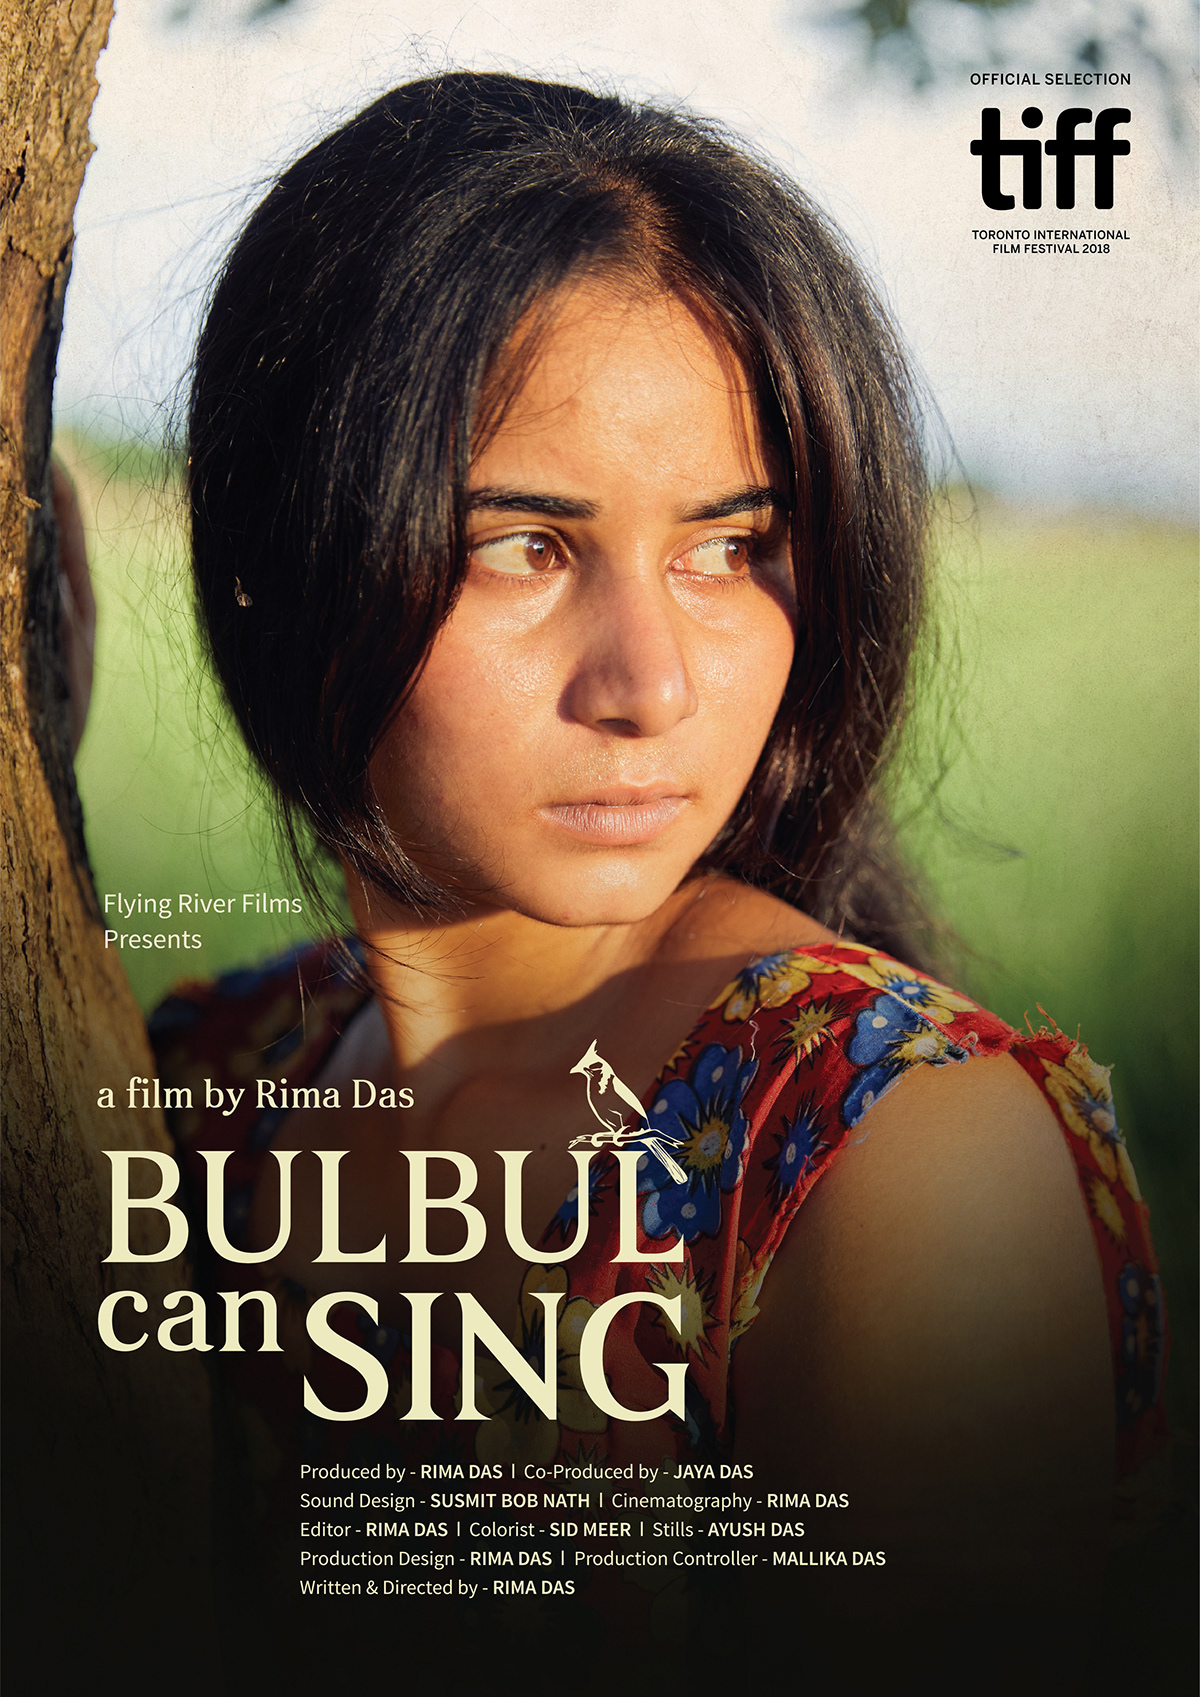 Festival de Berlin 2019 impression Bulbul can sing film